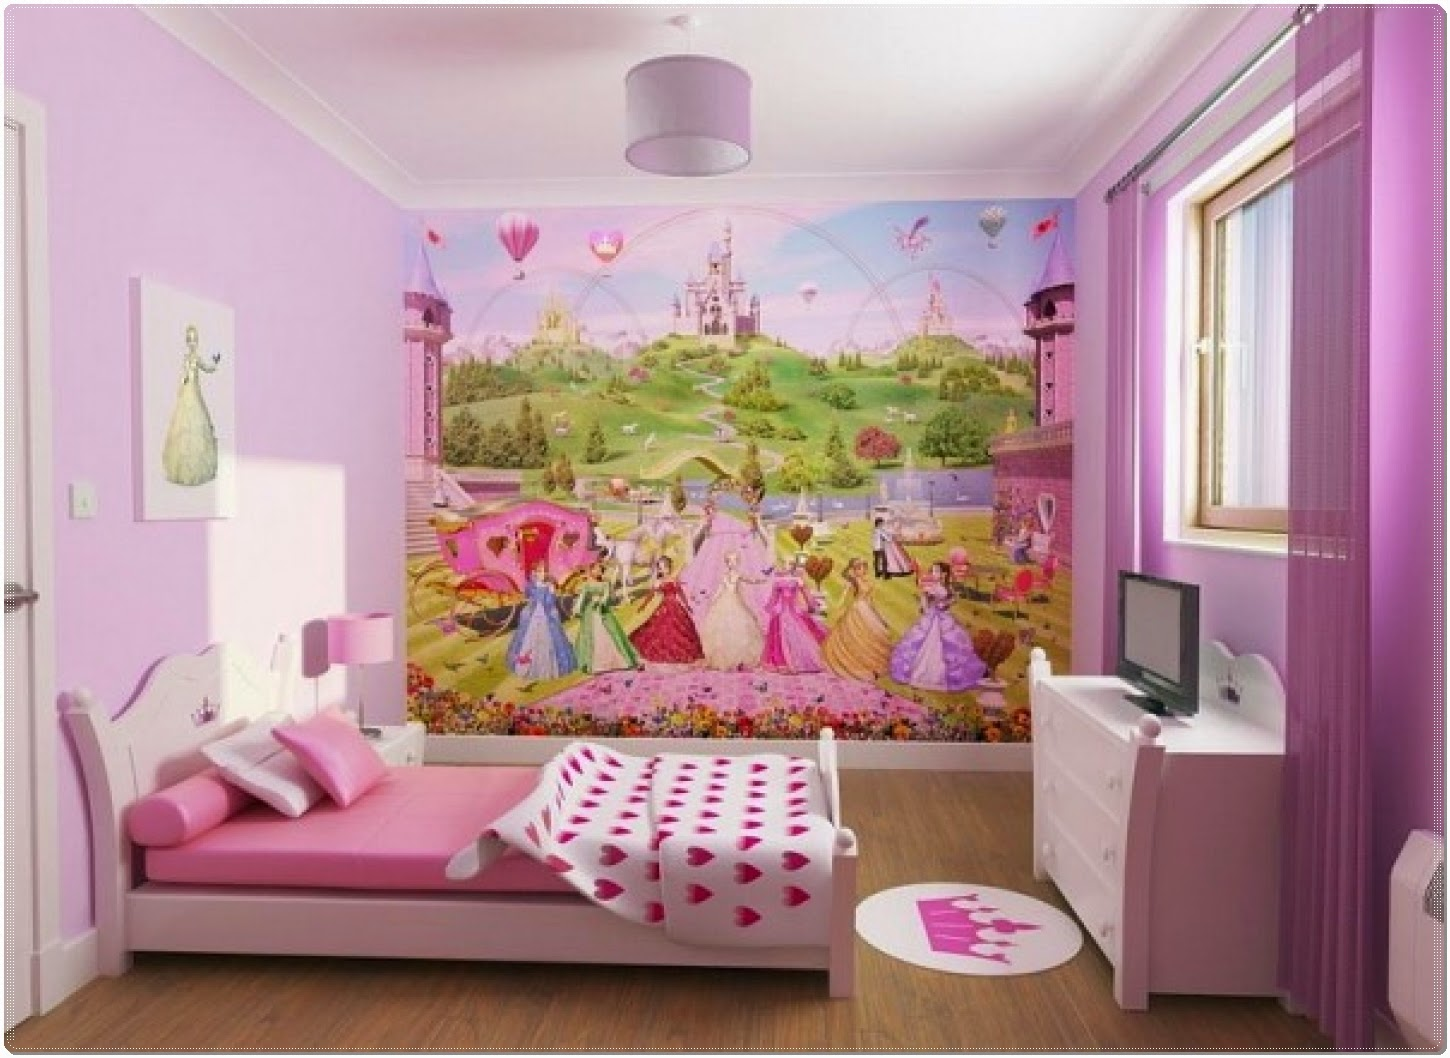 Kids Bedroom The Best Idea Of Little Girl Room With Princess